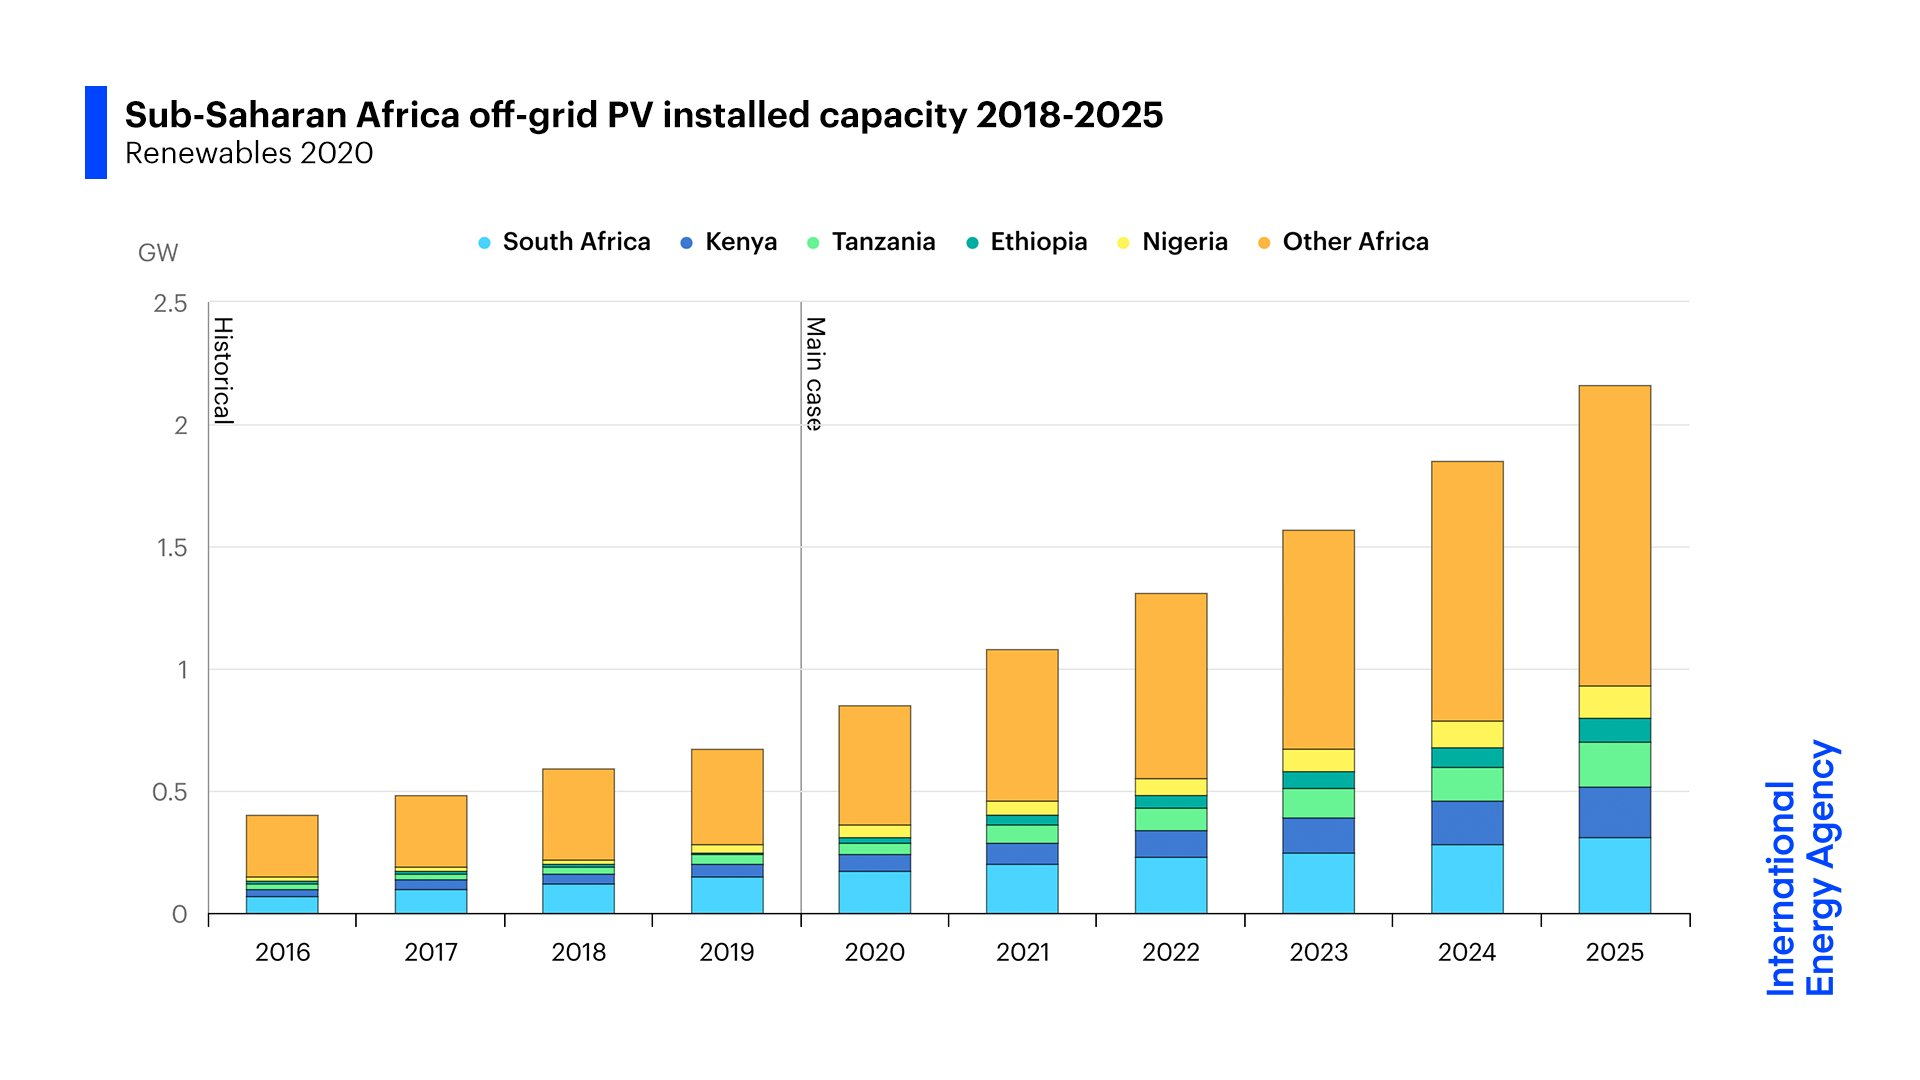 Sub-Saharan Africa off-grid PV offering easier access to electricity